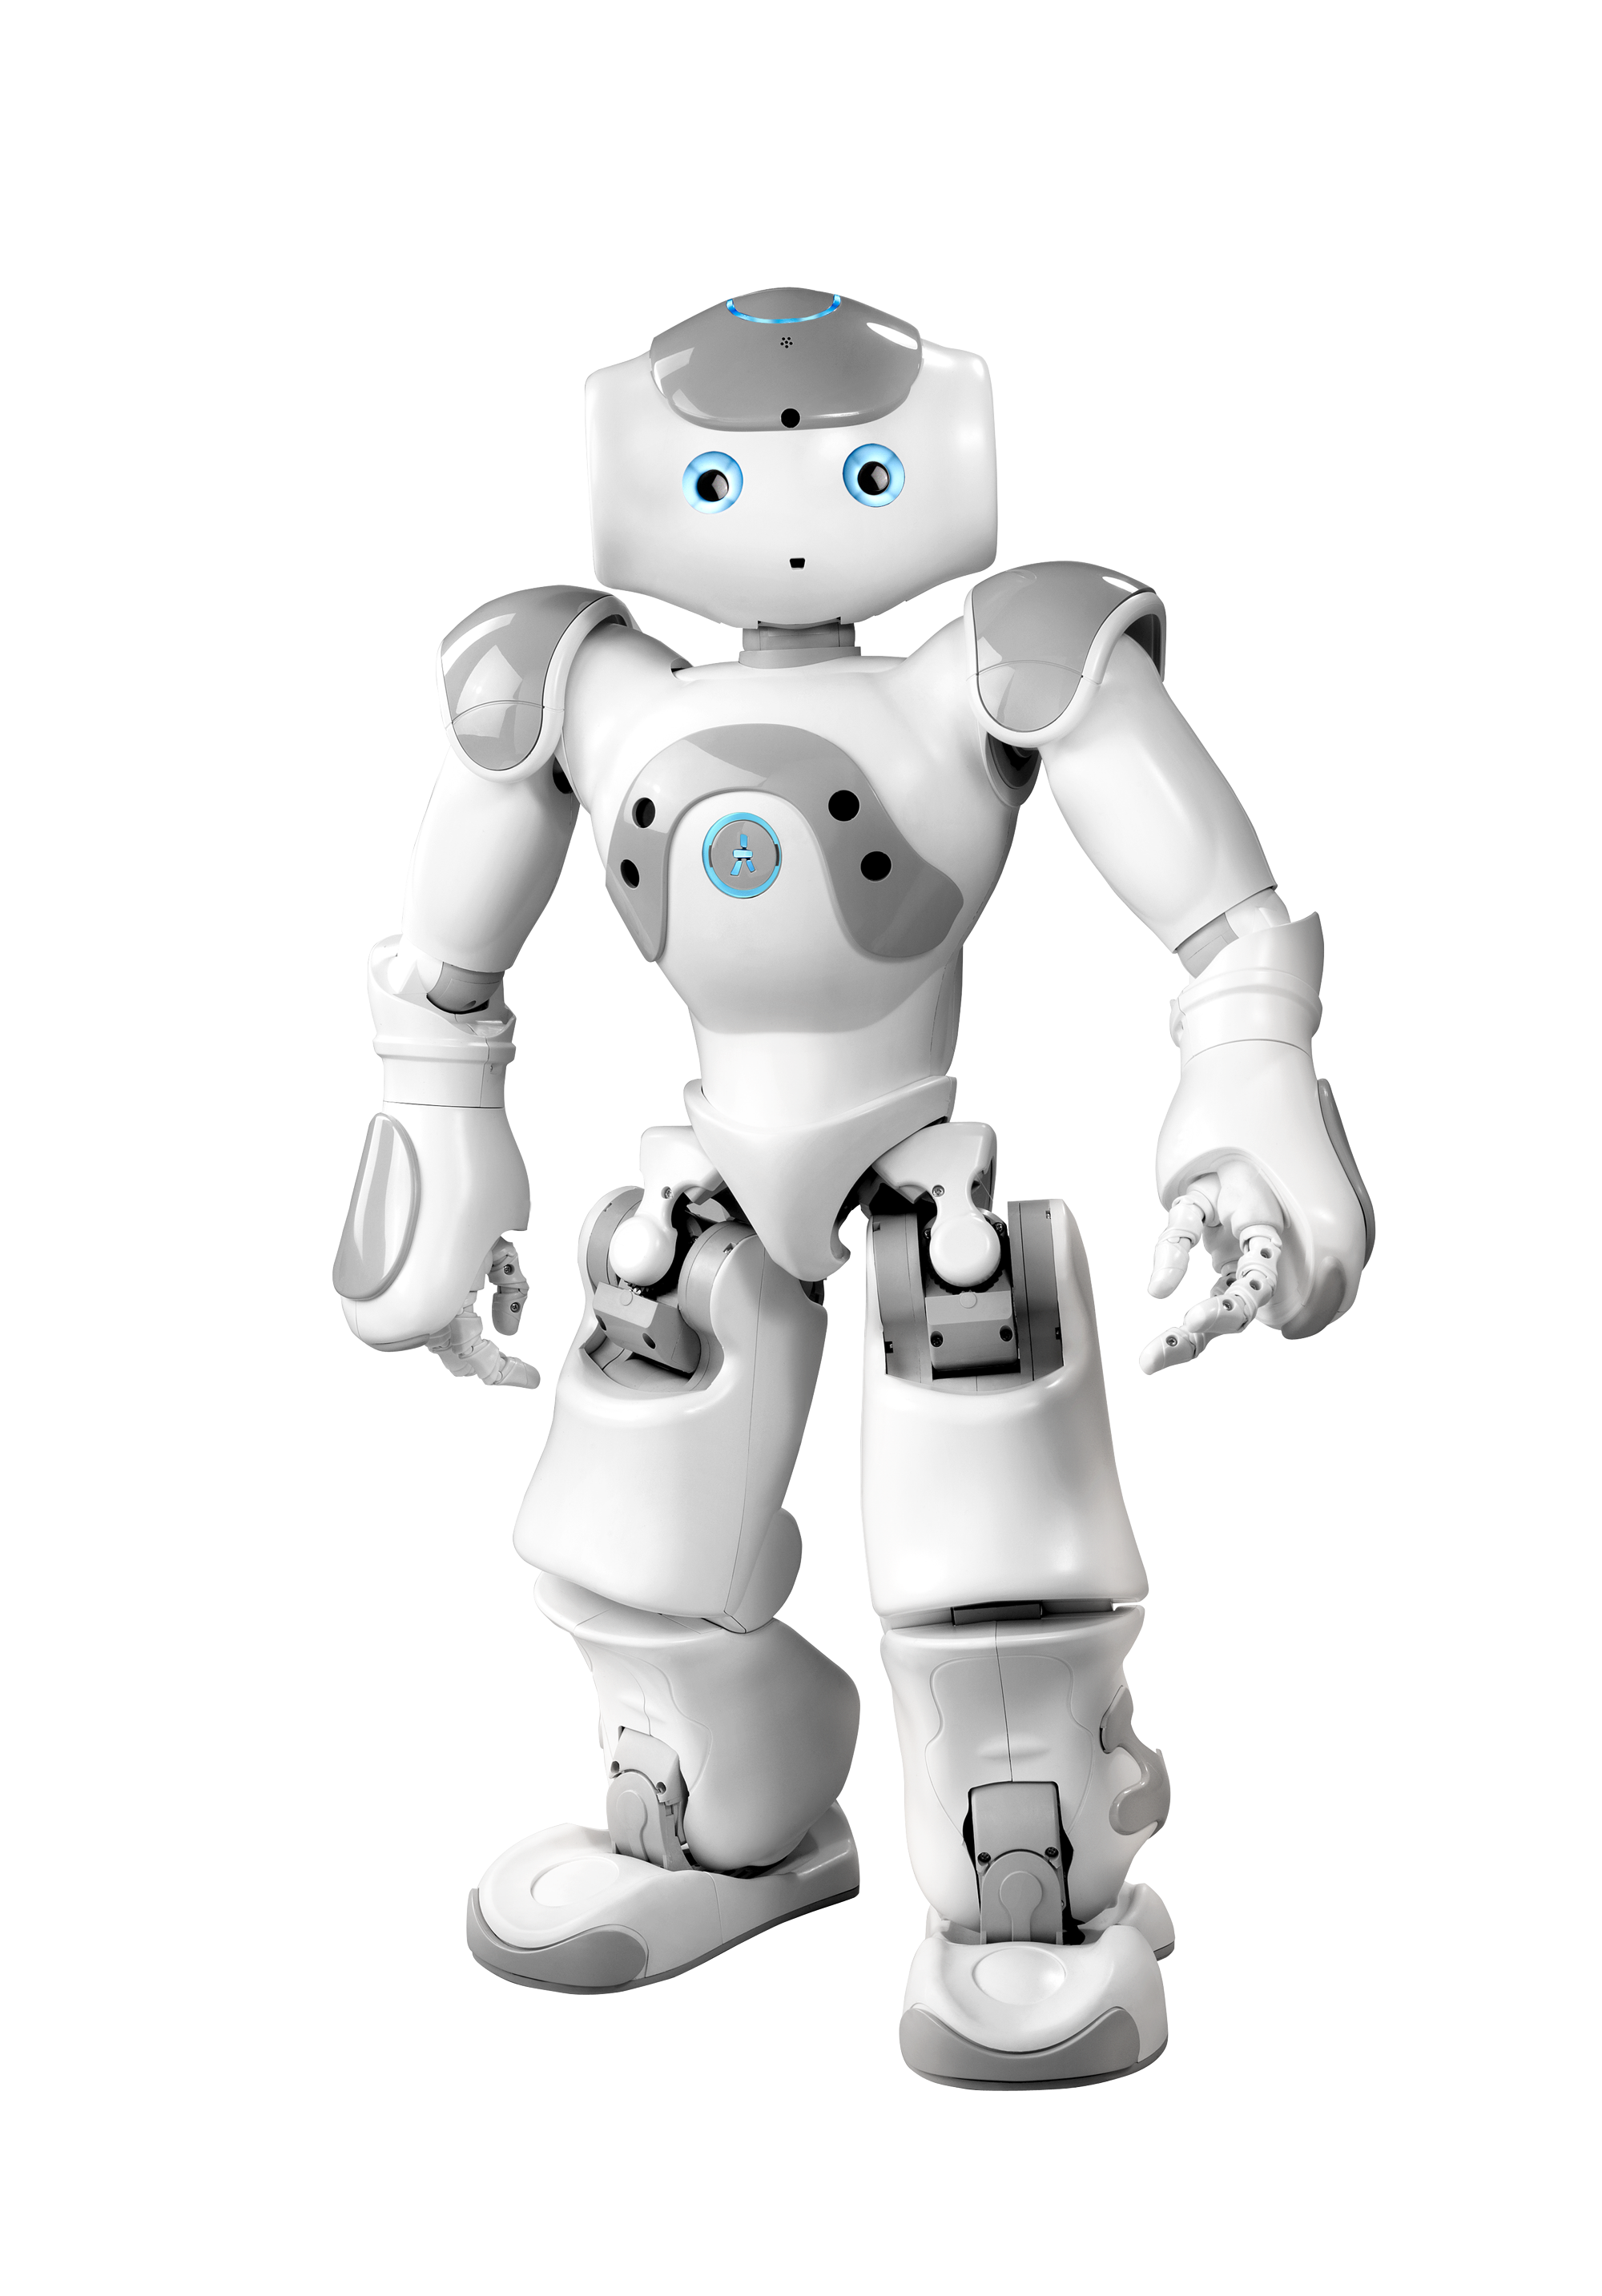 Humanoid clipart library Robot clipart humanoid robot, Robot humanoid robot Transparent FREE ... library